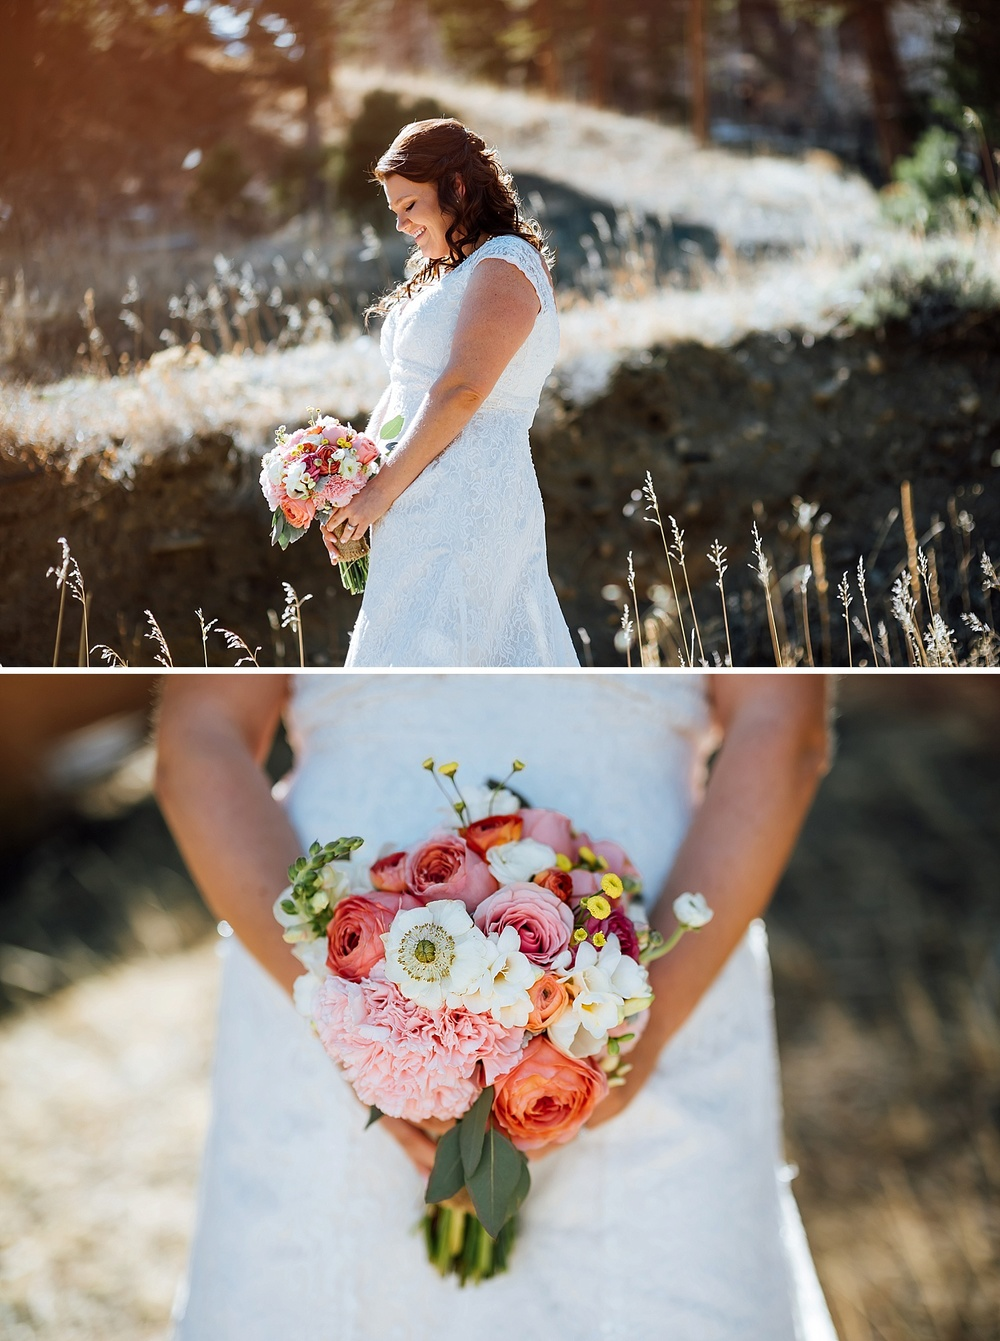 This bouquet with shades of coral, pink, orange, white and yellow is beautiful! Paired with the lace wedding dress is perfection! I love the how the bright colors stand out against the white. Beautiful bridal photos. Photo by Maddie Mae Photography